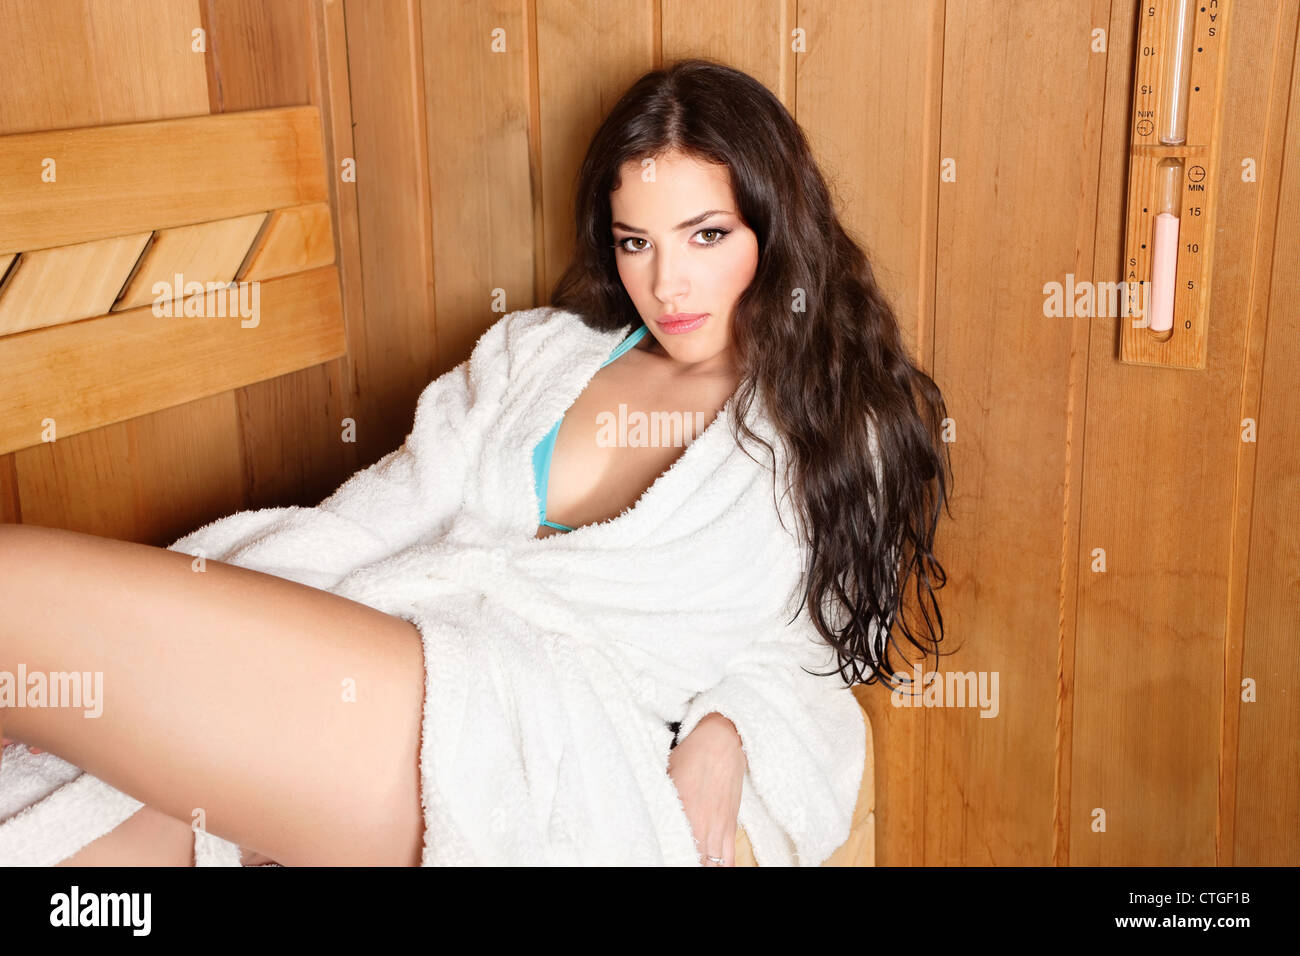 young woman relaxing in finnish type wooden sauna - Stock Image